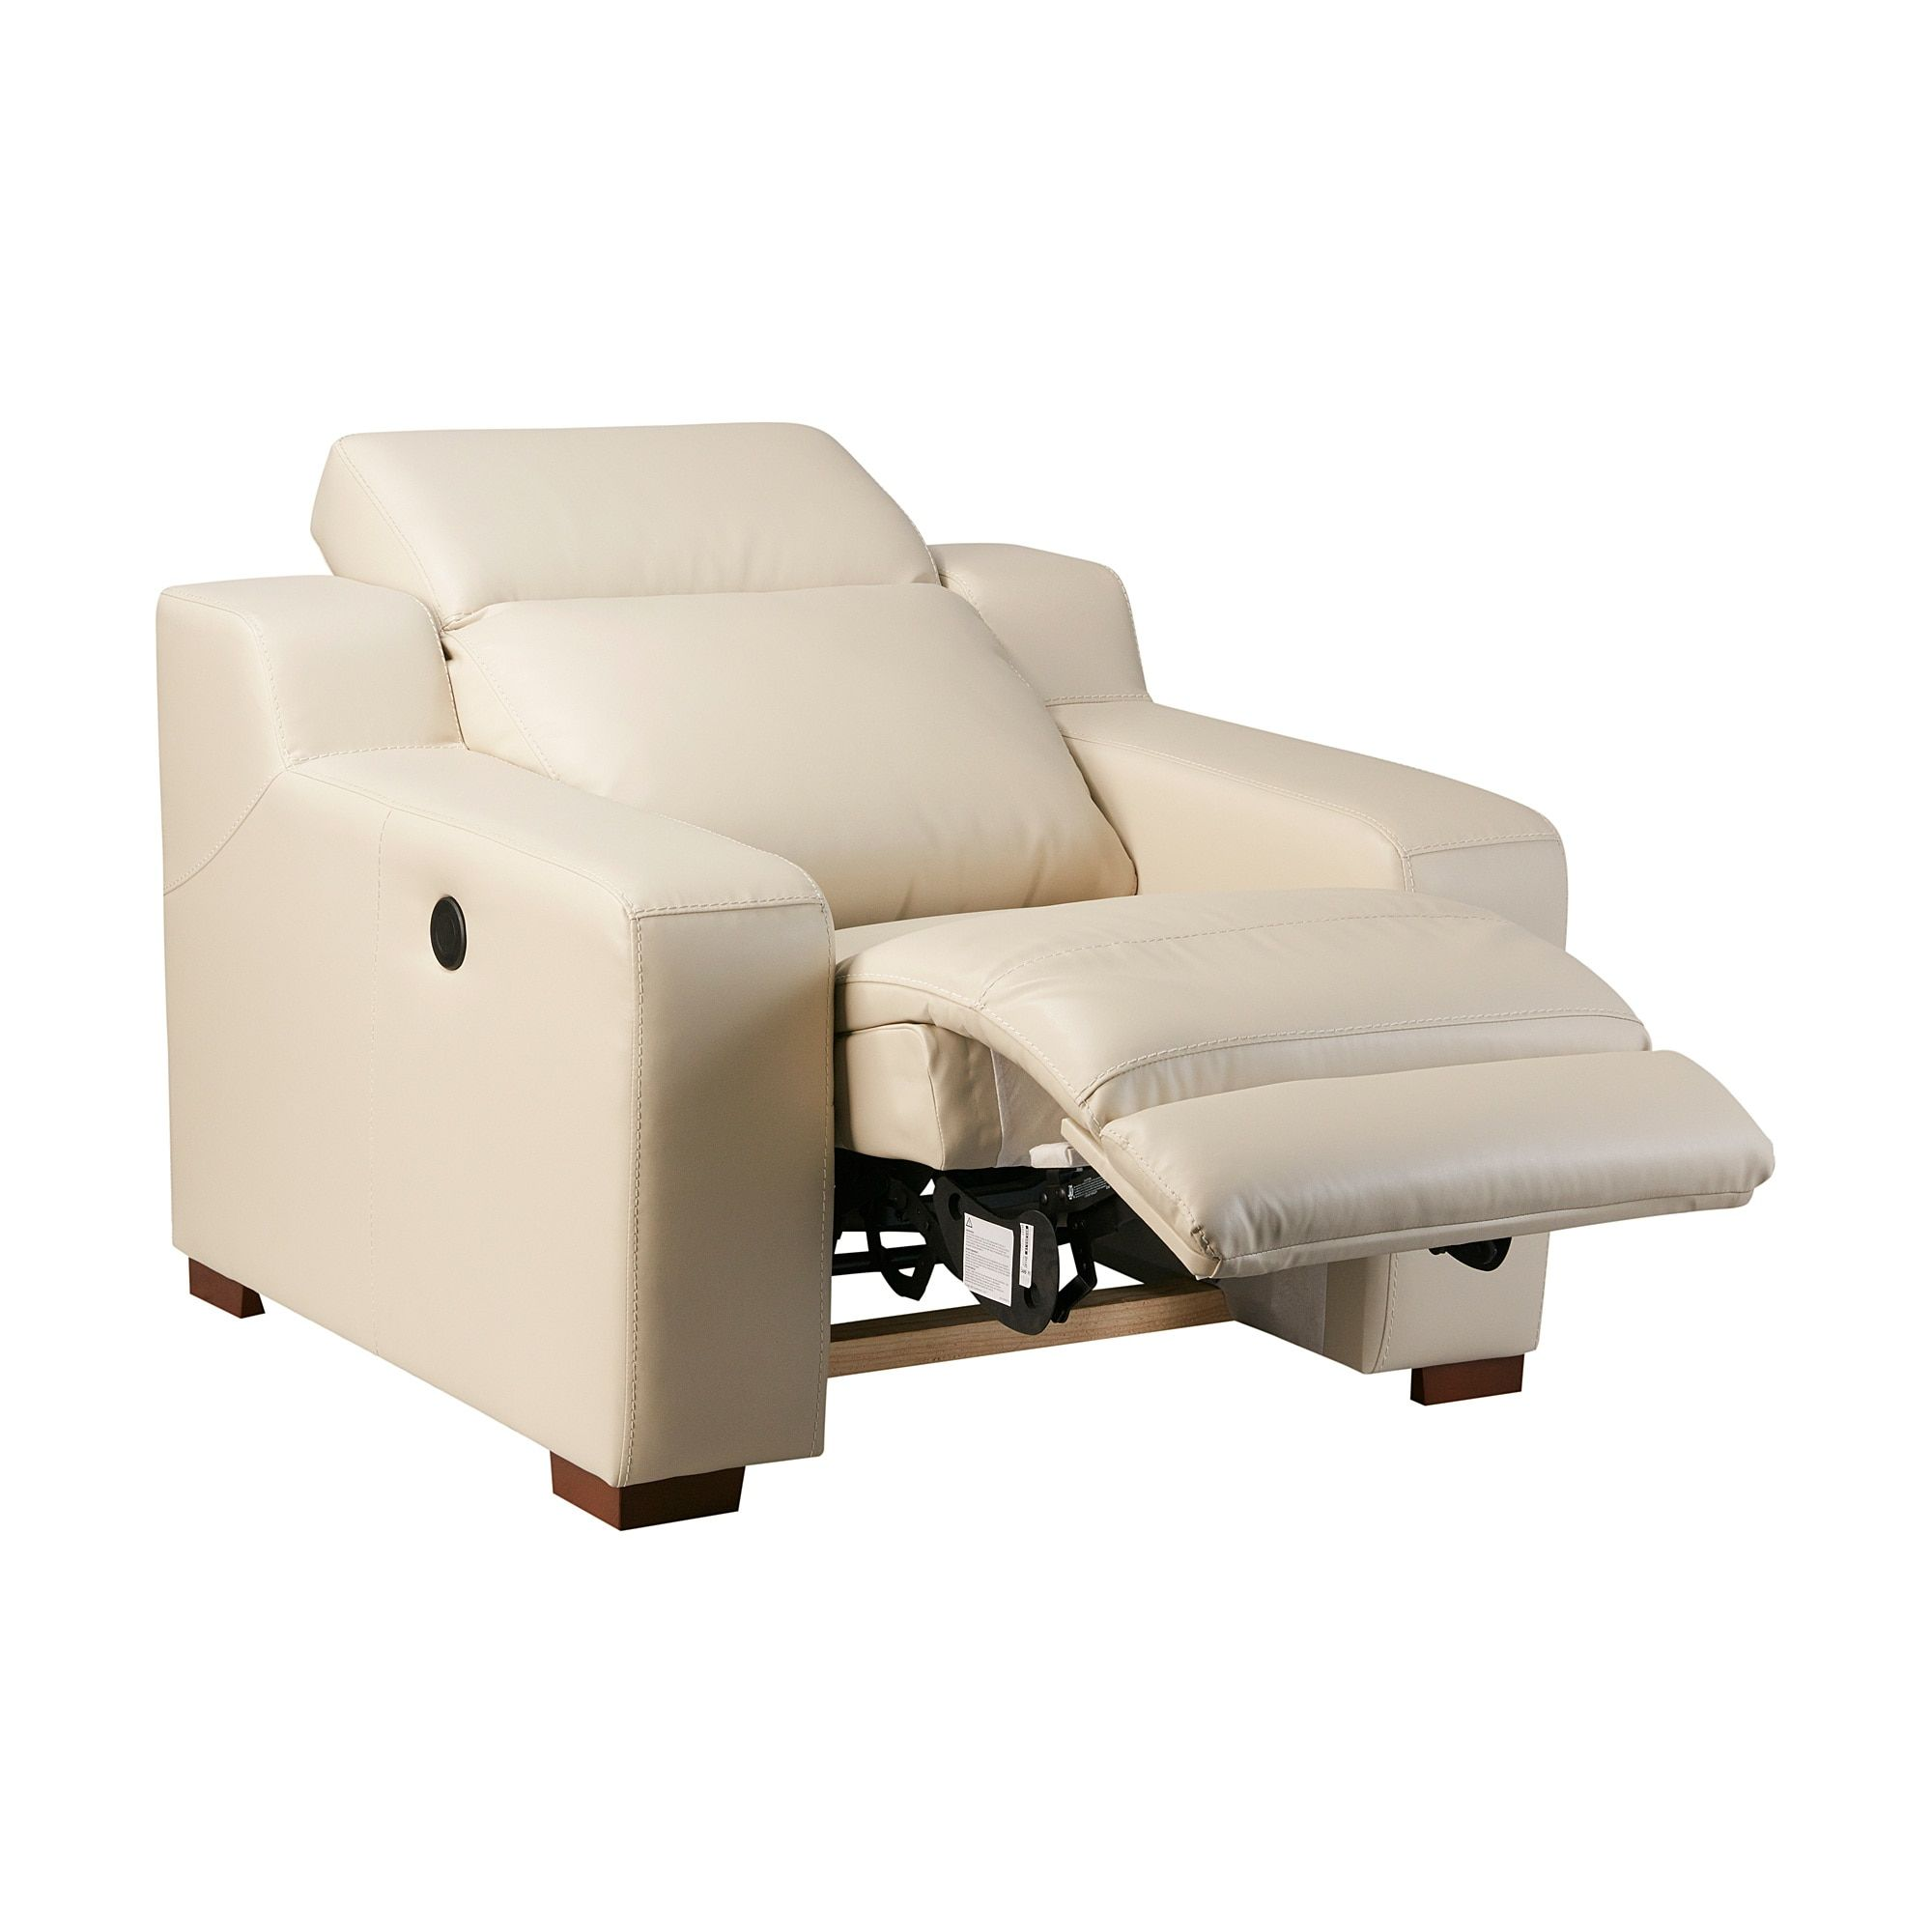 Magnificent Ikea Uttran Reclining Armchair Kimstad Off White Pabps2019 Chair Design Images Pabps2019Com